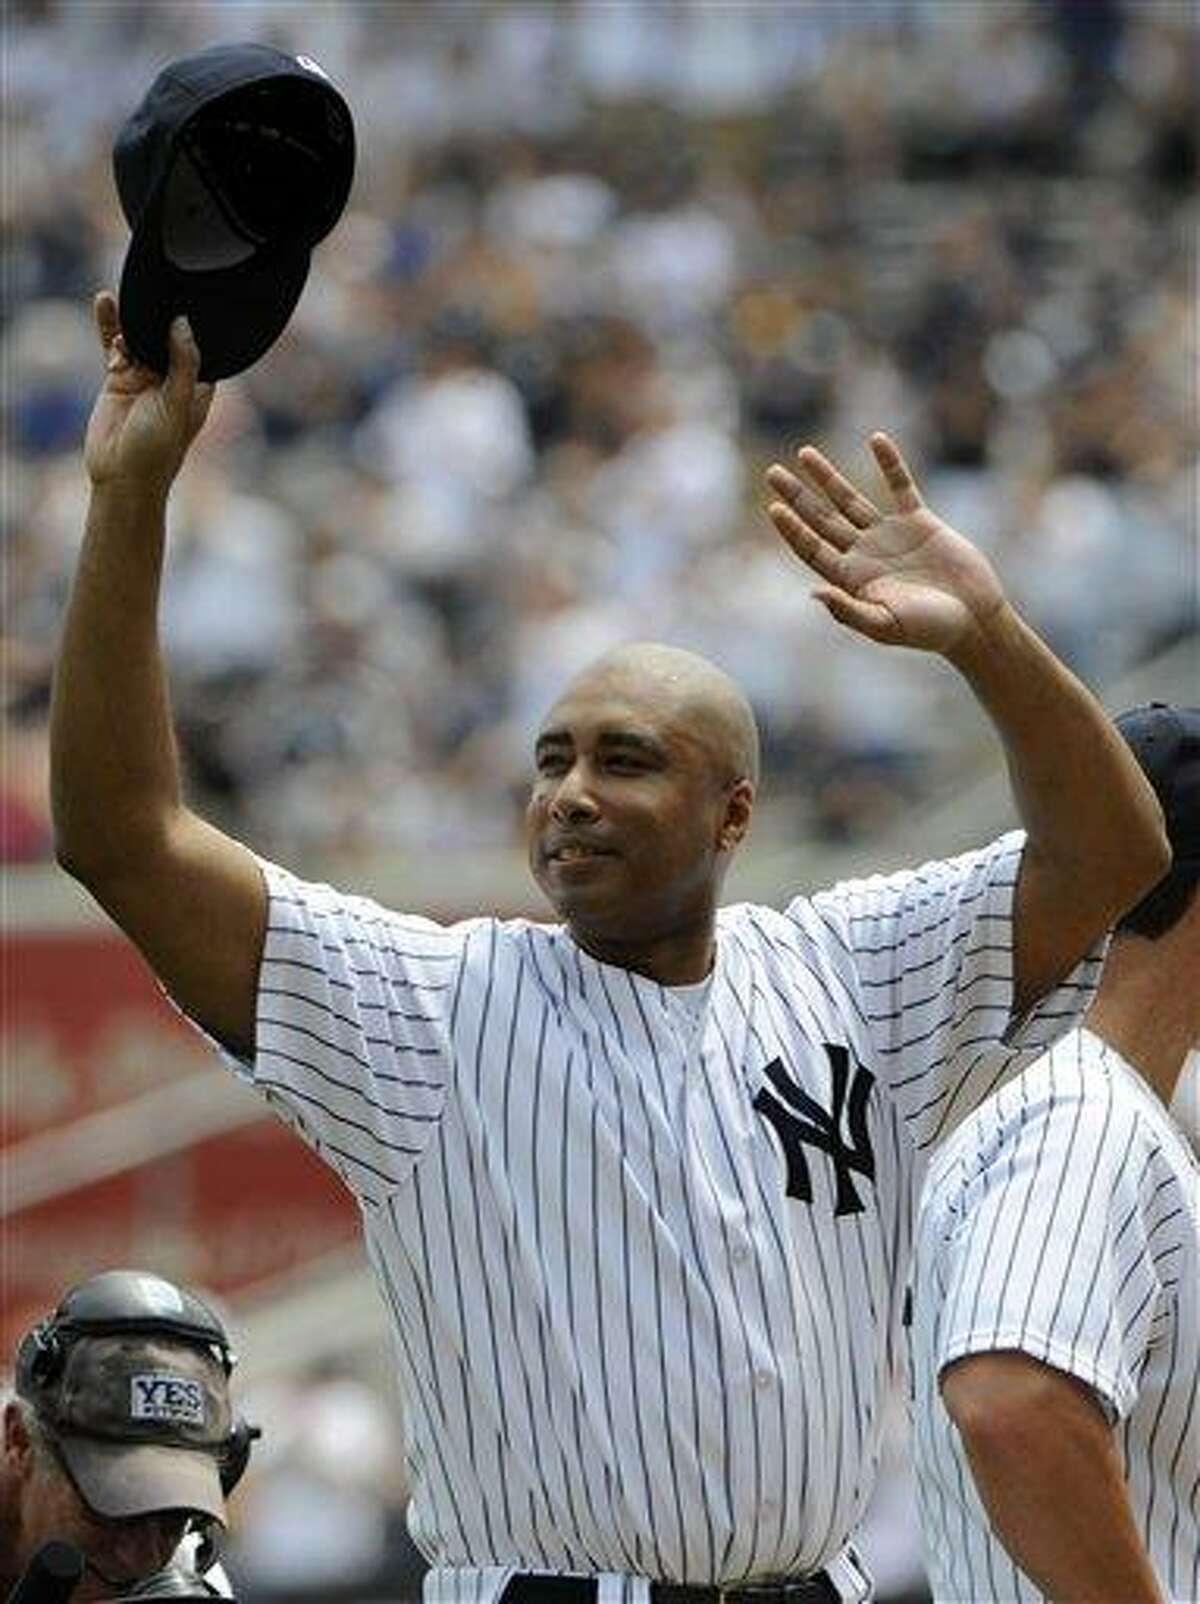 Former New York Yankees center fielder Bernie Williams reacts to applause during Old Timers' Day ceremonies on Sunday, June 26, 2011, at Yankee Stadium in New York. (AP Photo/Bill Kostroun)